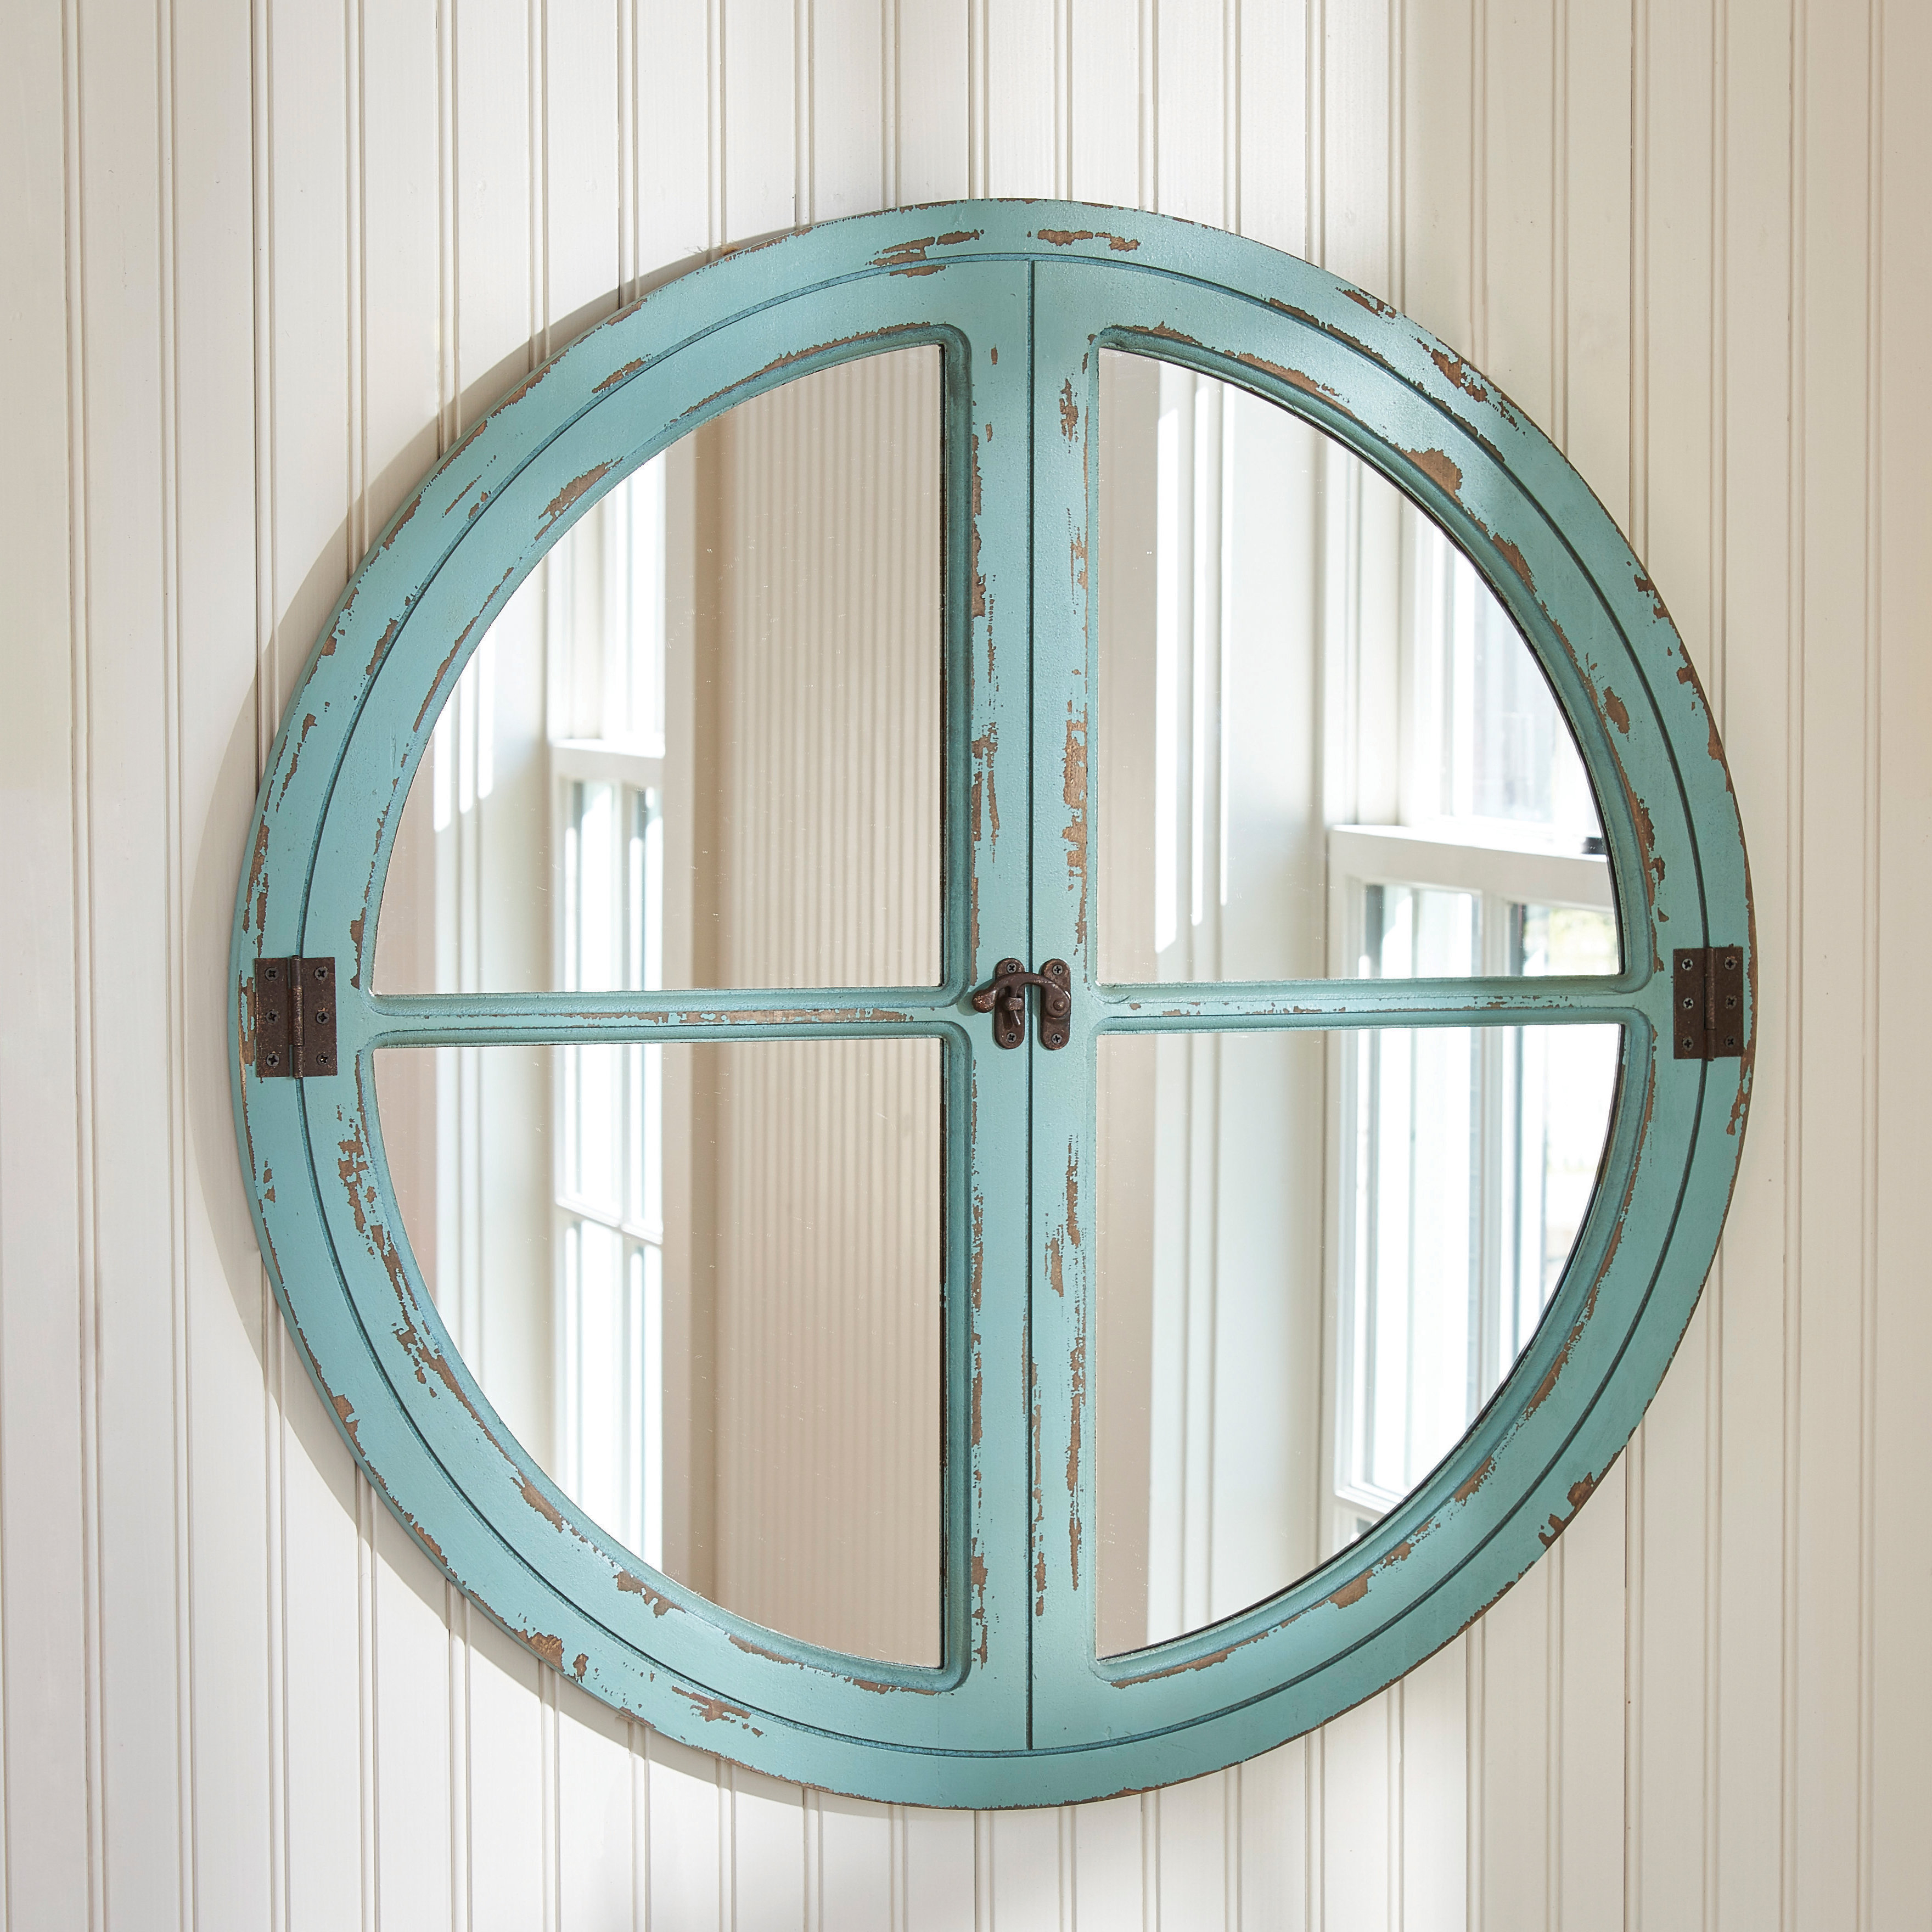 Turquoise Wall Mirrors Throughout Current Round Window Sea Wall Mirror (View 14 of 20)